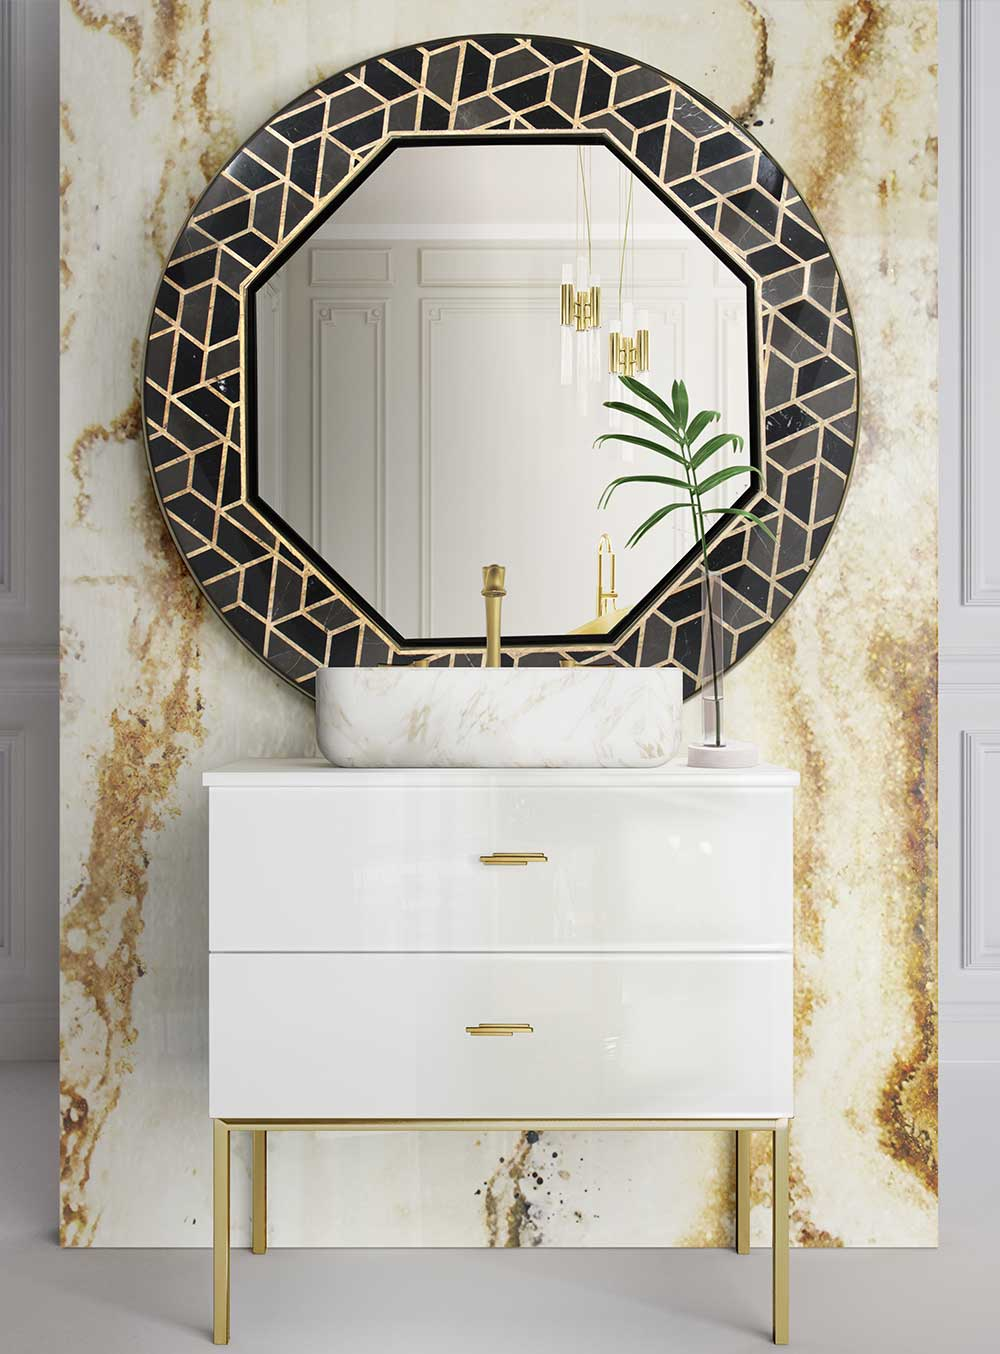 wall mirror ideas 9 Wall Mirror Ideas That Will Give a Unique Look to Your Room assemble to order ambience